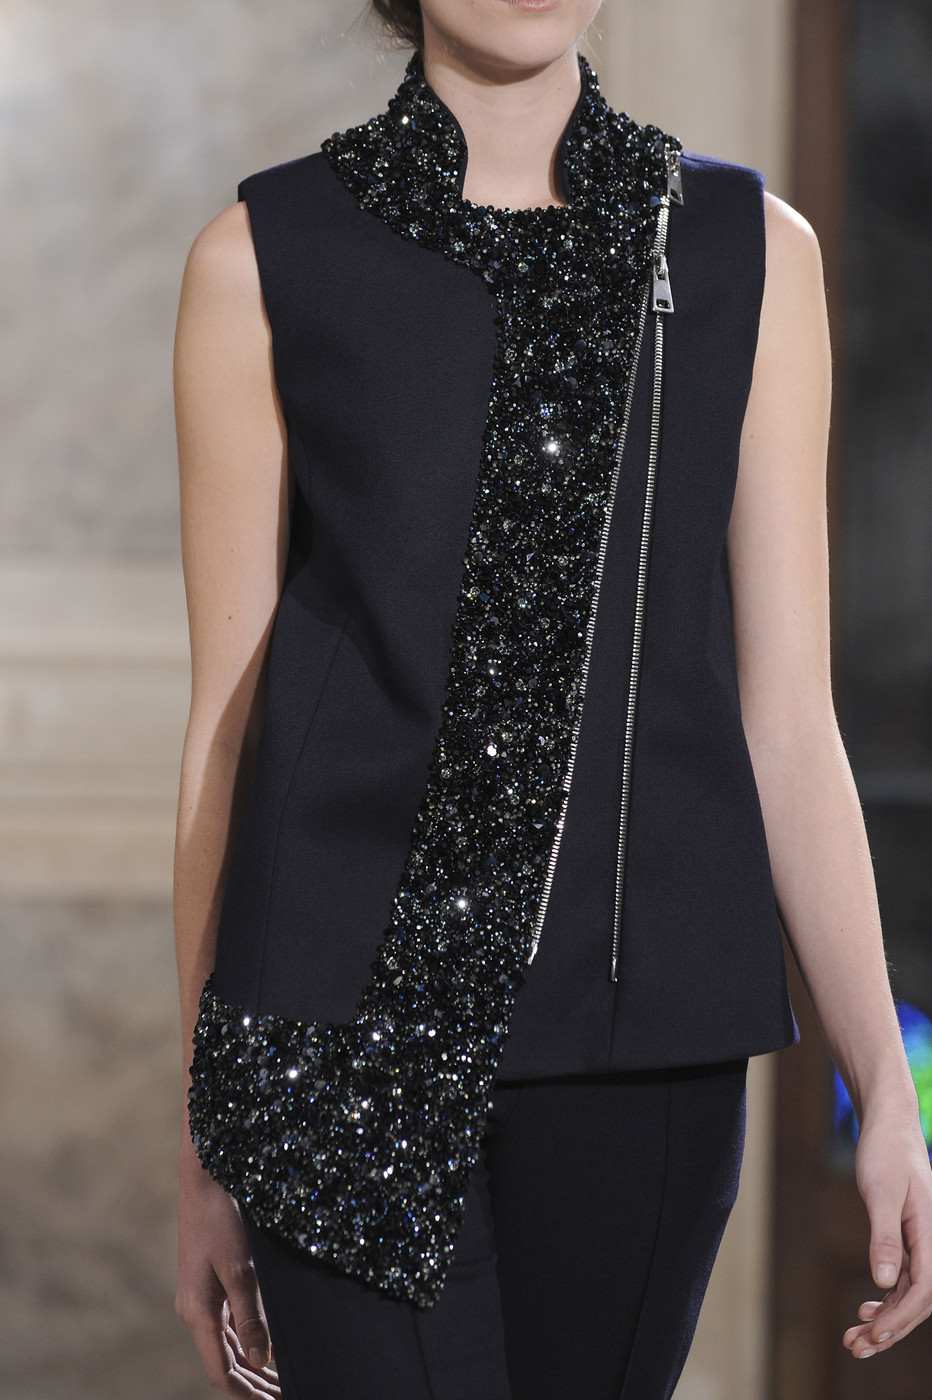 Bouchra Jarrar Haute Couture Spring-Summer 2014 / Lanvin new fashion designer via www.fashionedbylove.co.uk